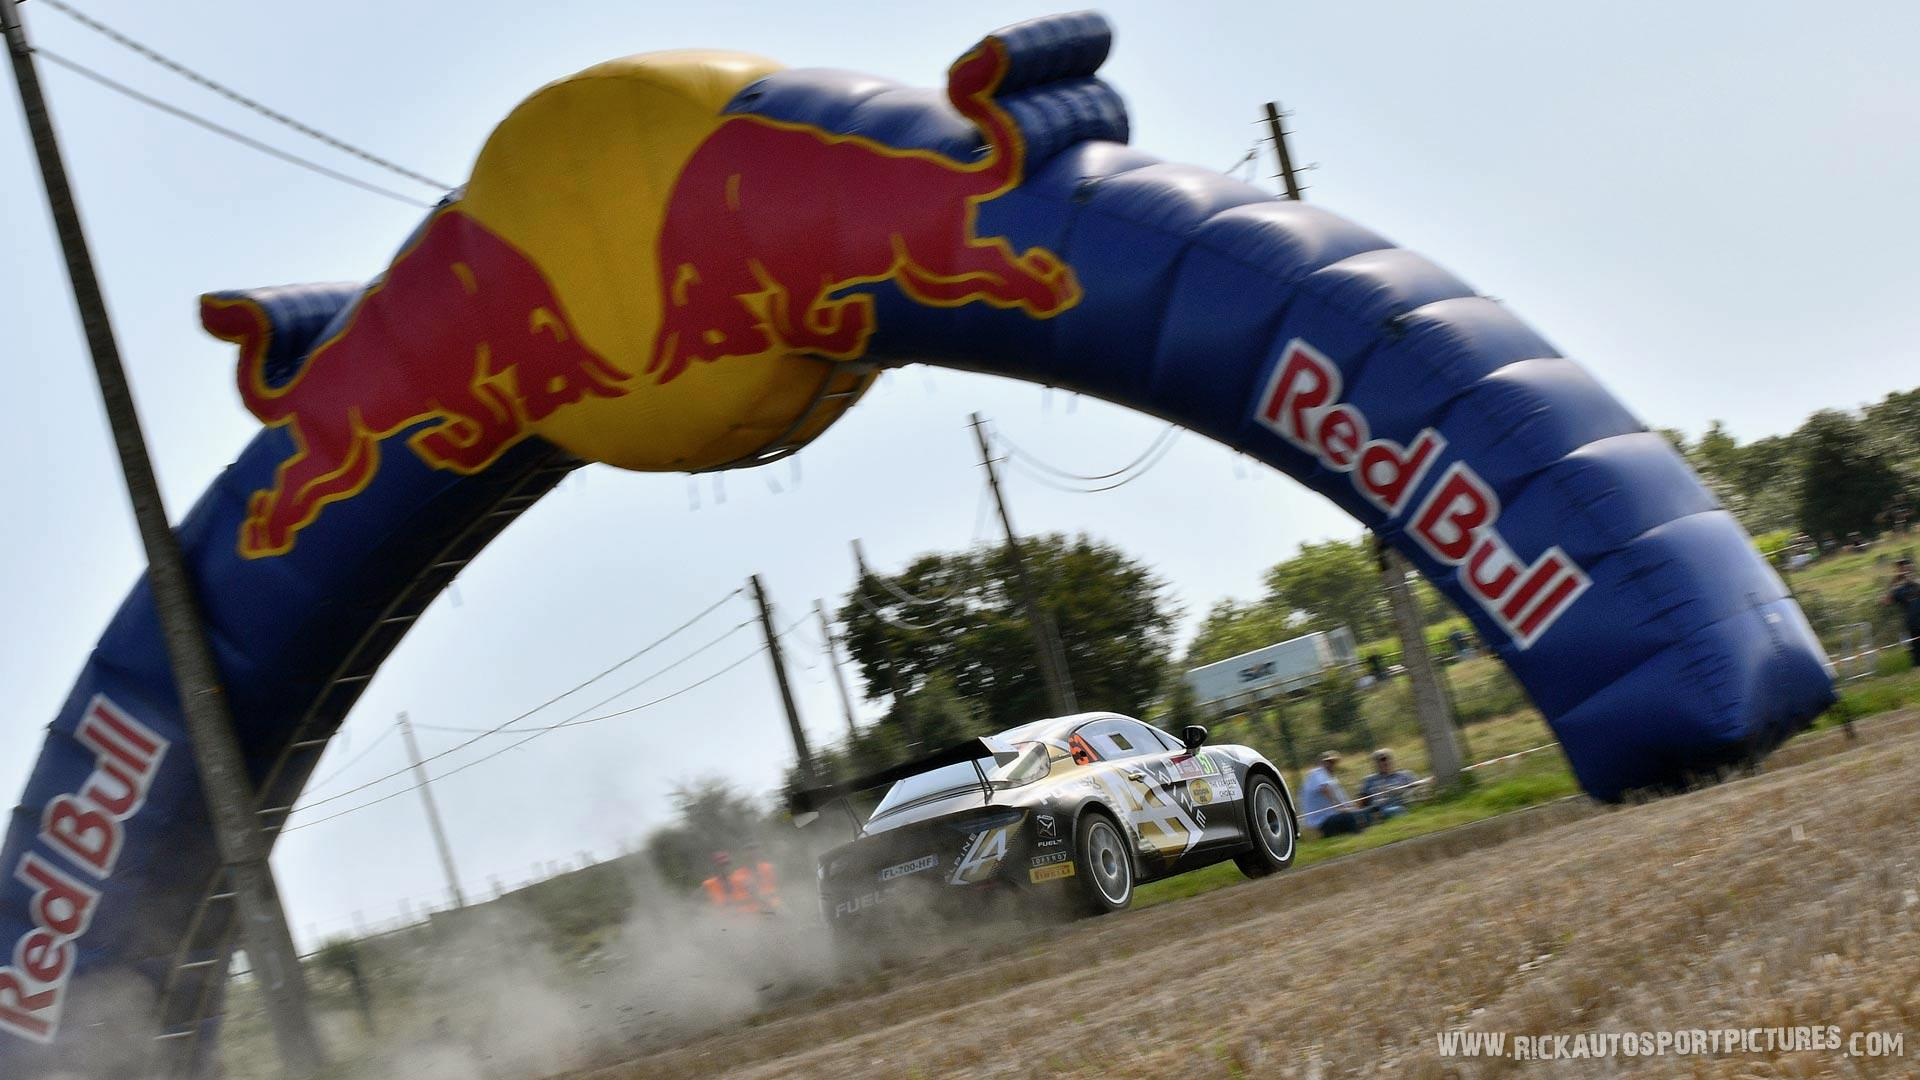 Gino Bux ypres ieper rally 2021